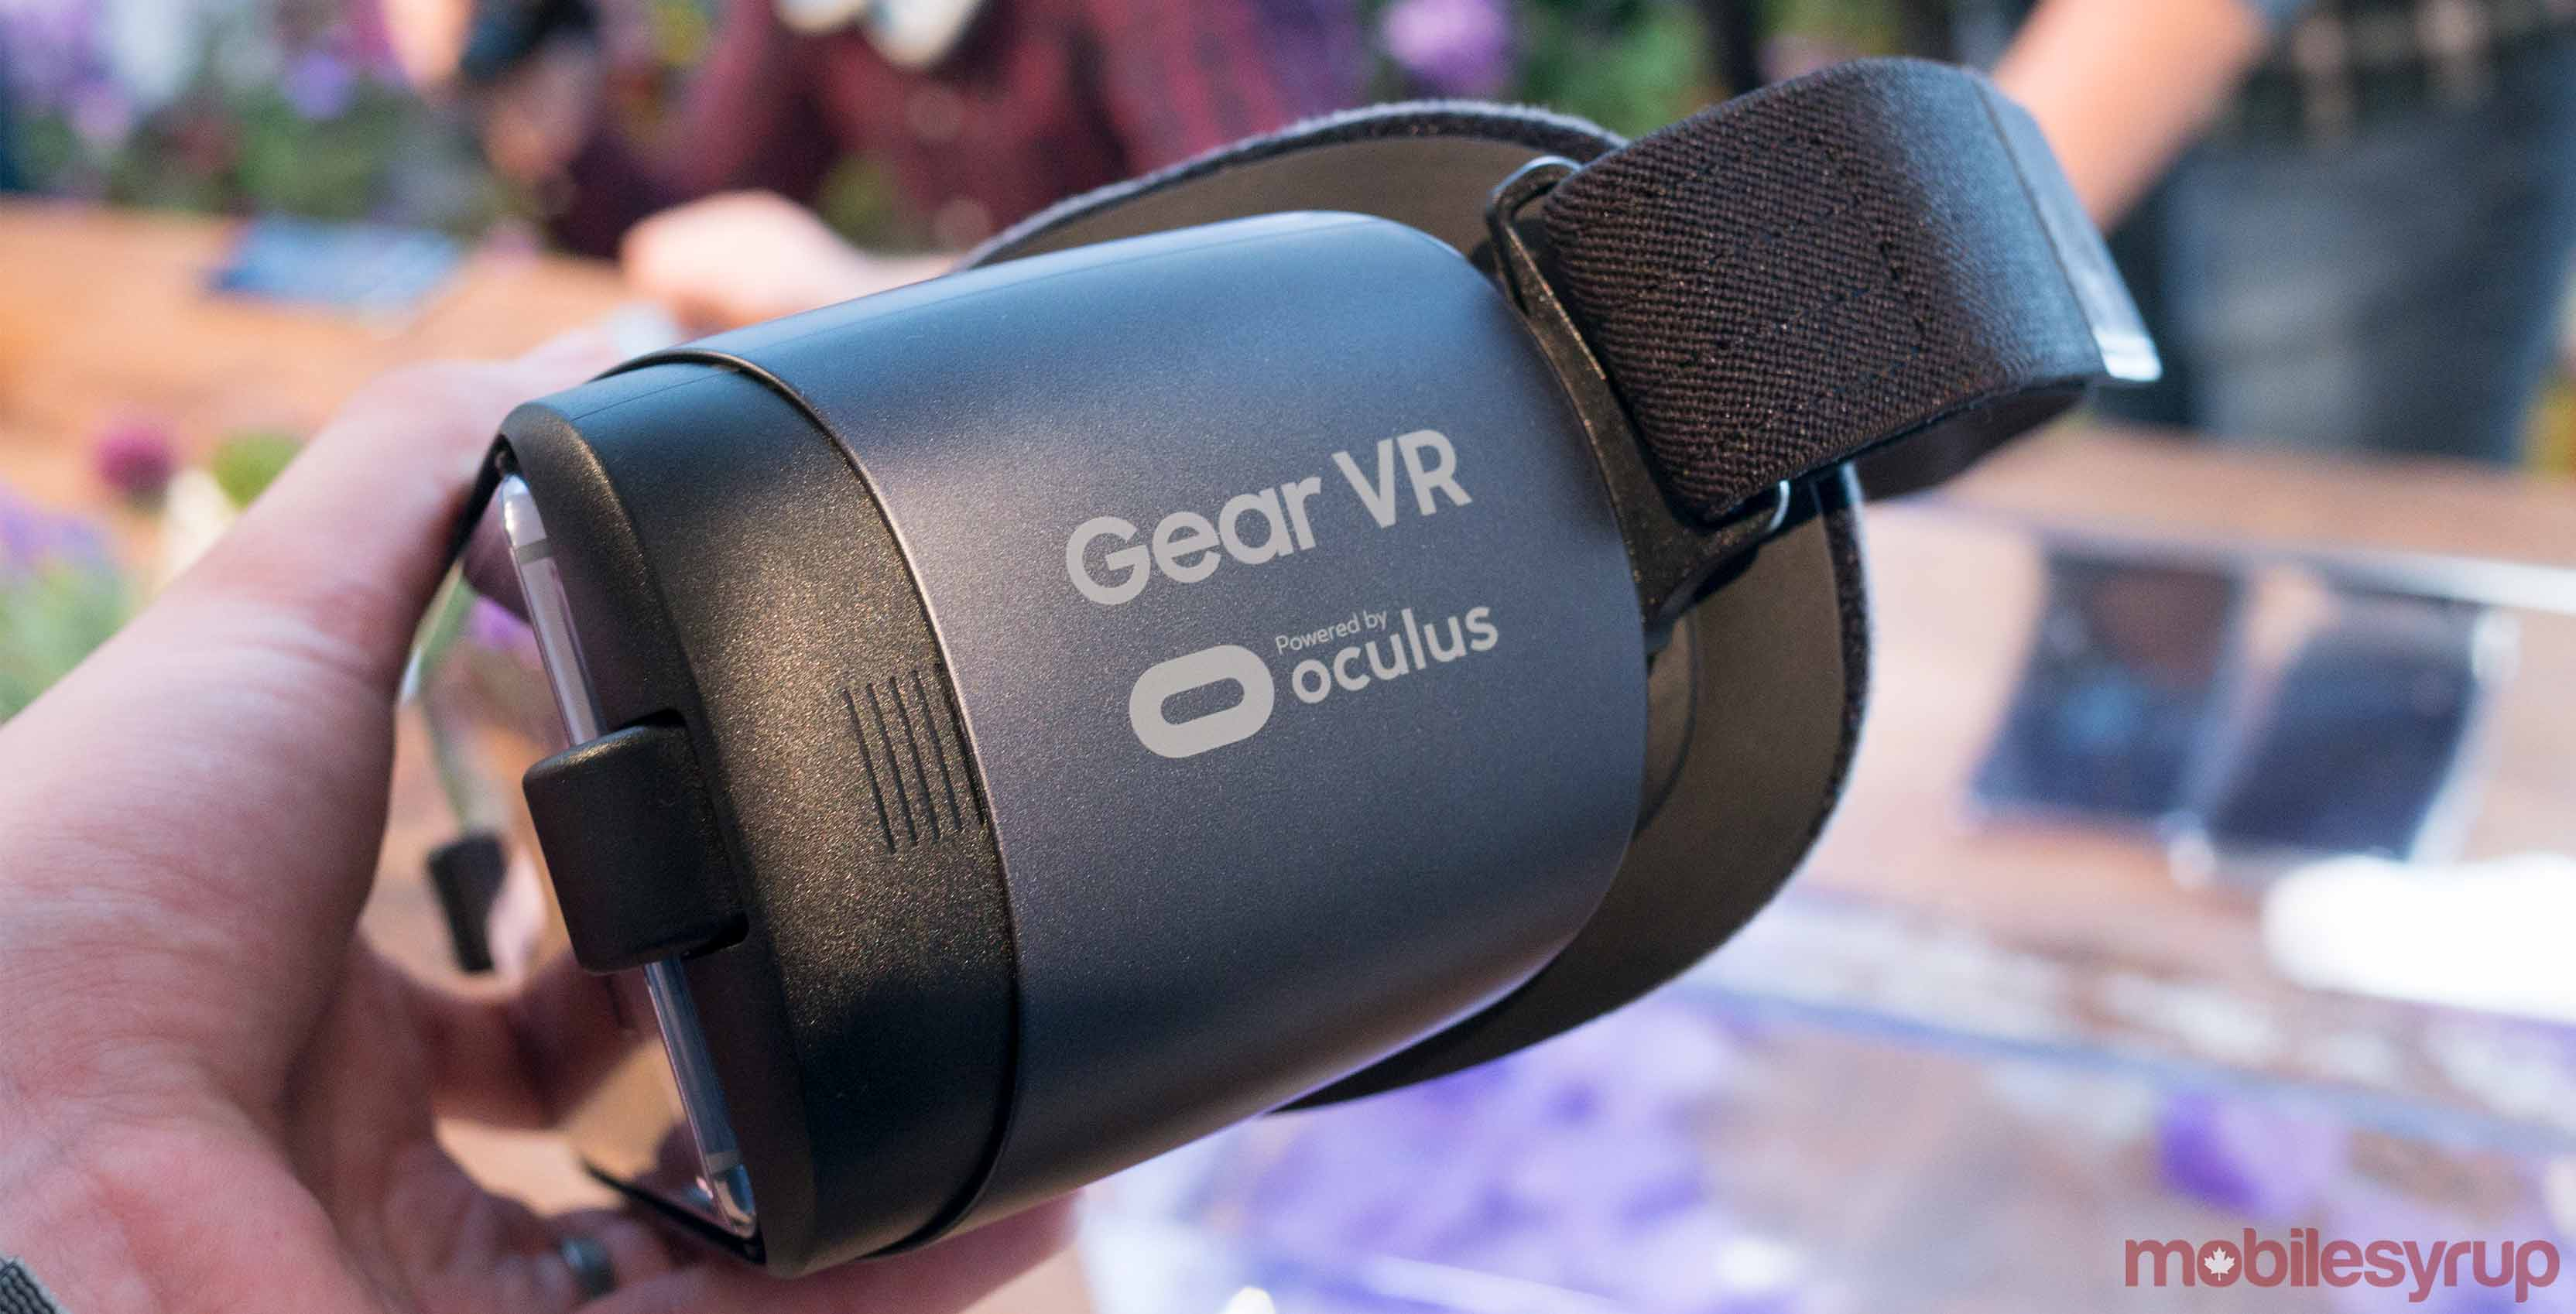 YouTube VR app coming to Samsung Gear VR